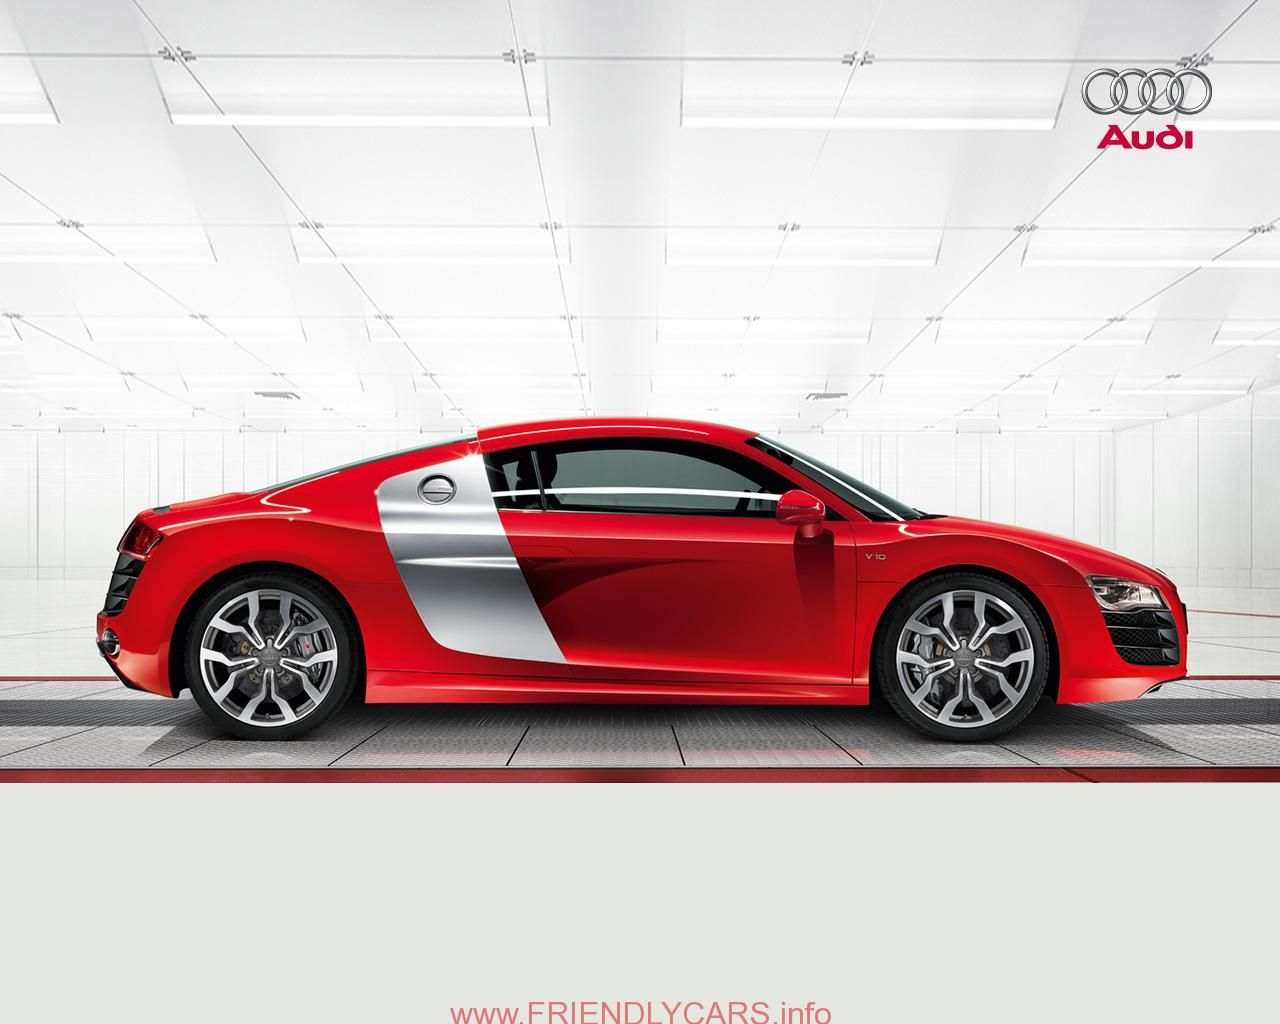 Nice Audi R8 Black V10 Wallpaper Car Images Hd Exotics And Luxury